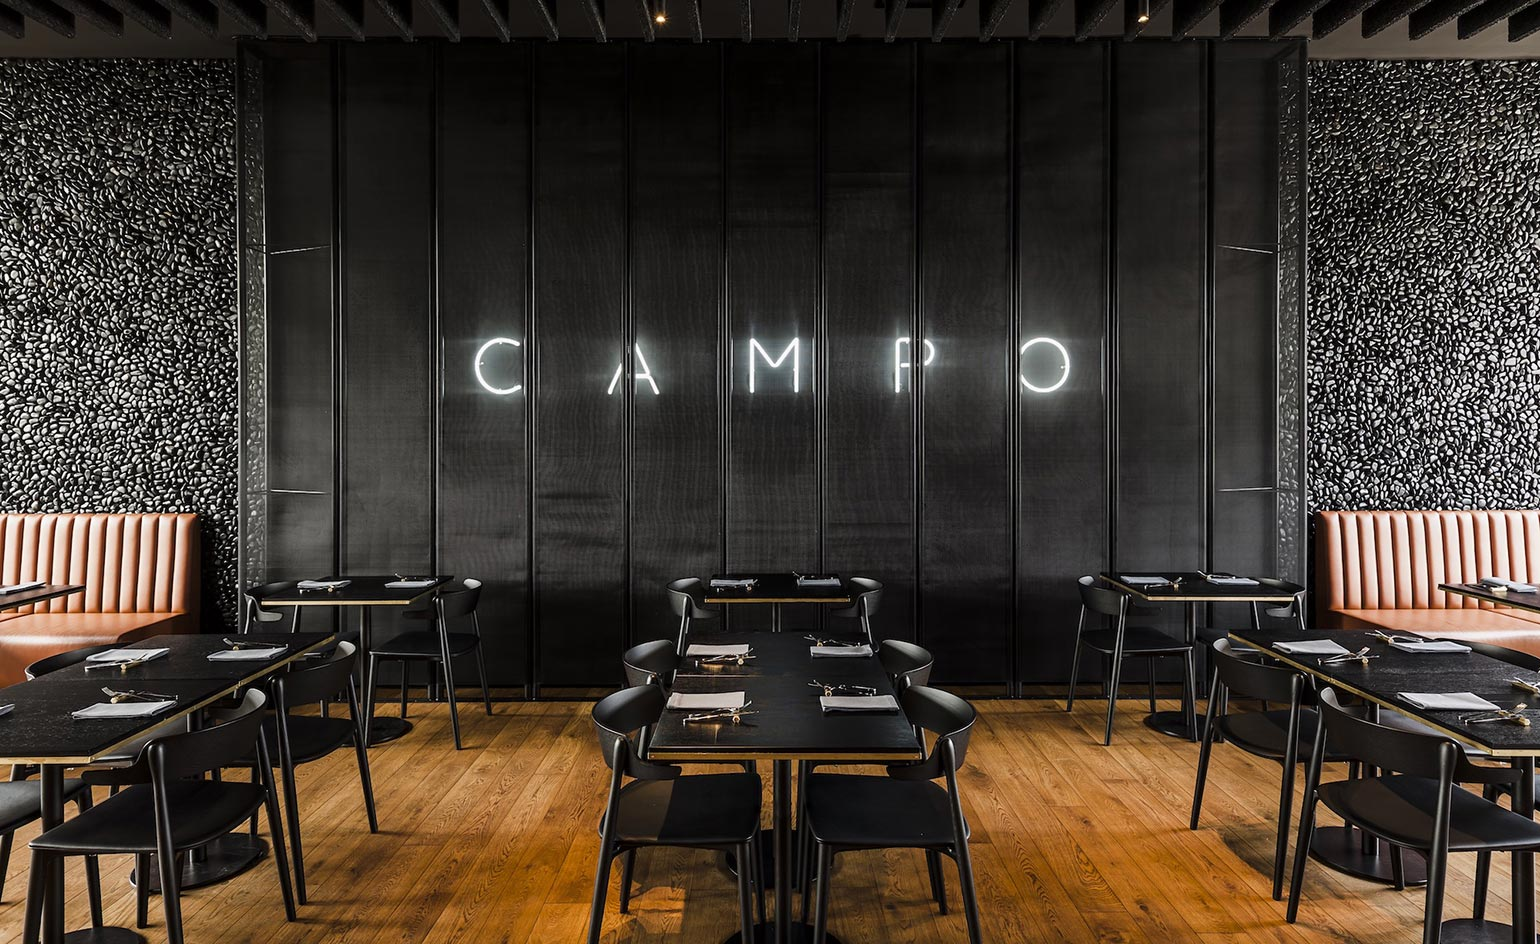 Campo modern grill restaurant review wroclaw poland